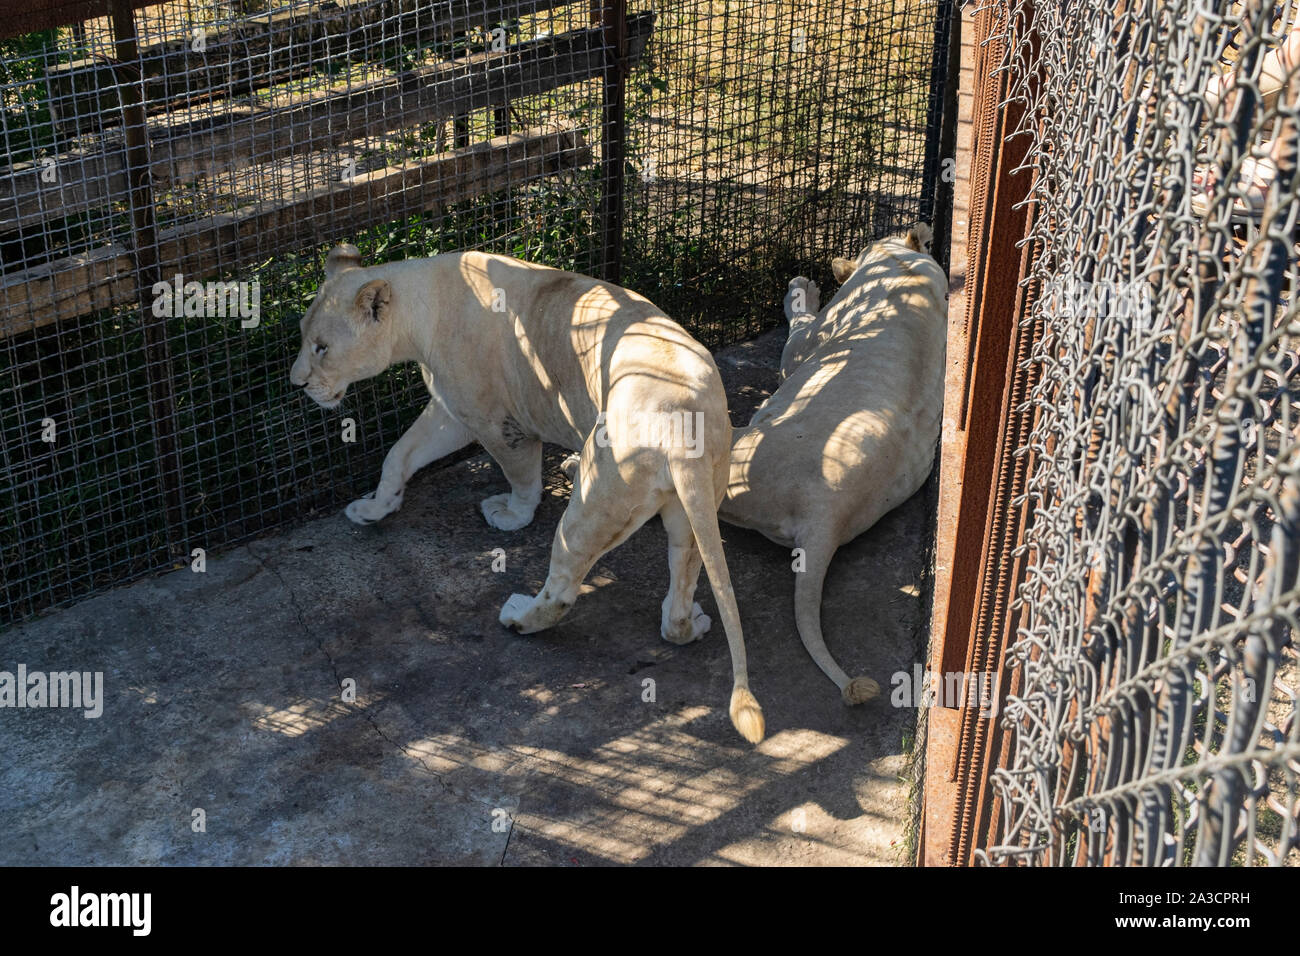 Two adult lionesses in the zoo resting in the enclosure - Stock Photo